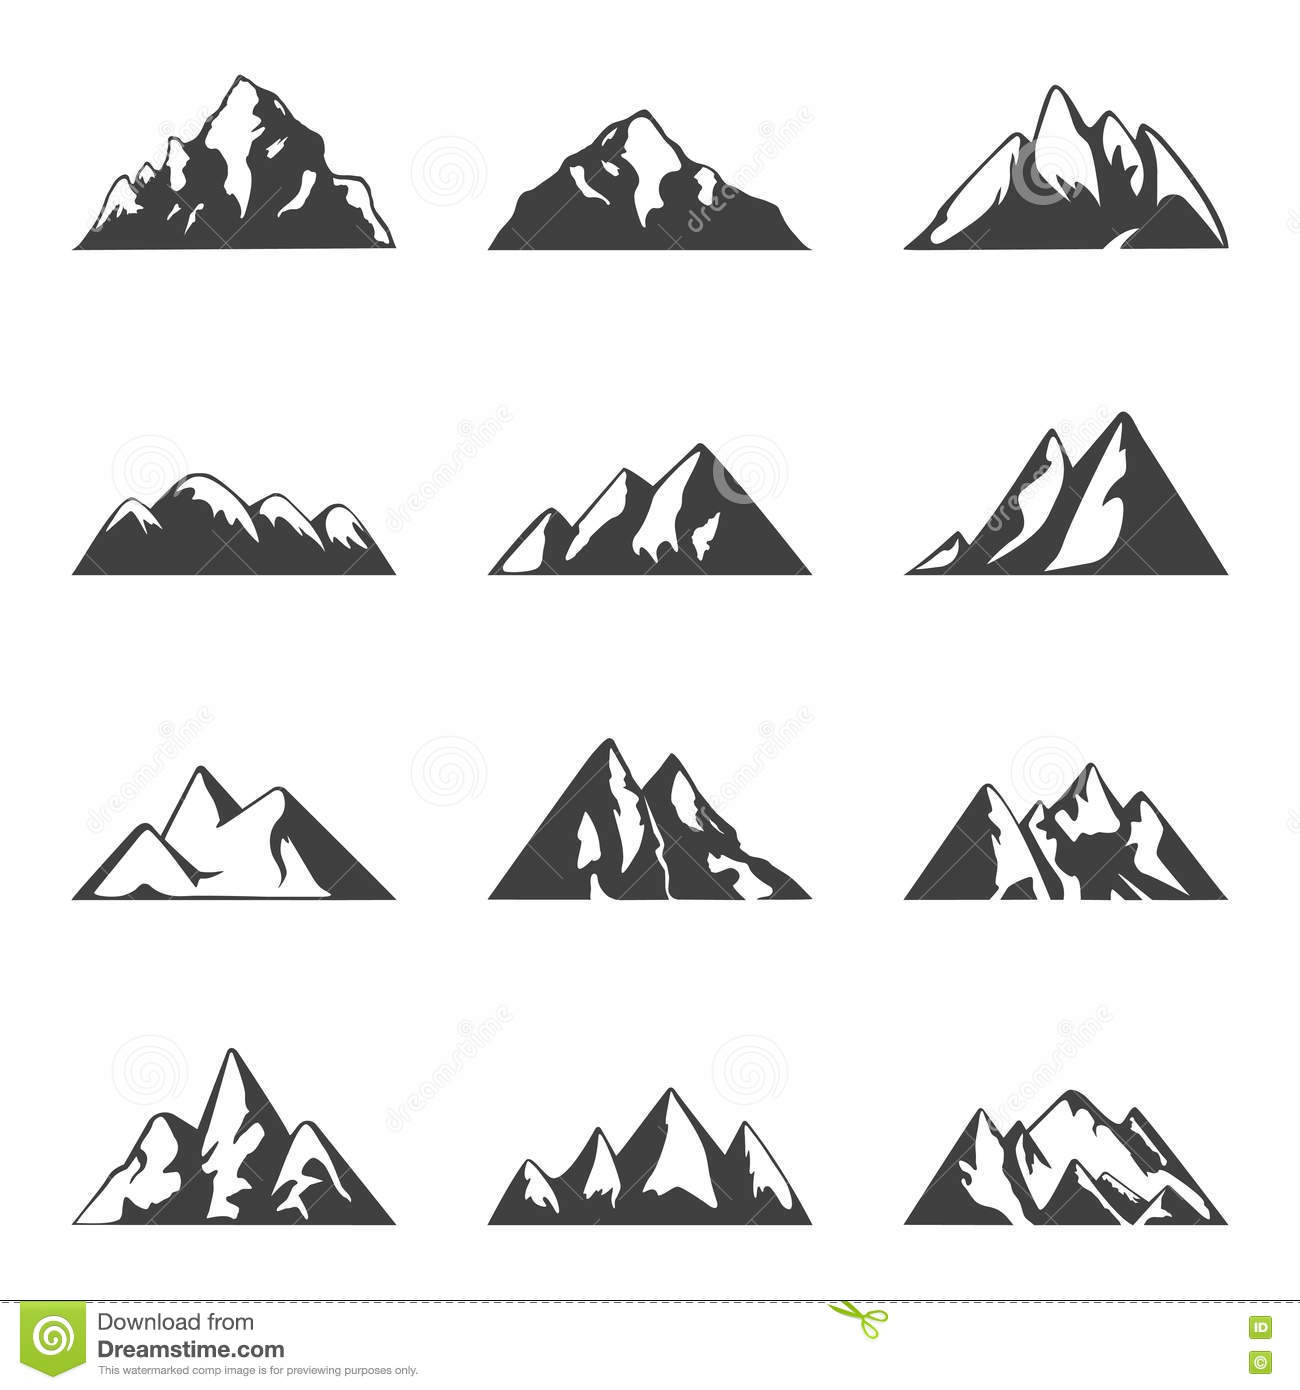 Vector mountain set. Simple black and white icons or design templates. Travel, hiking, camping theme.